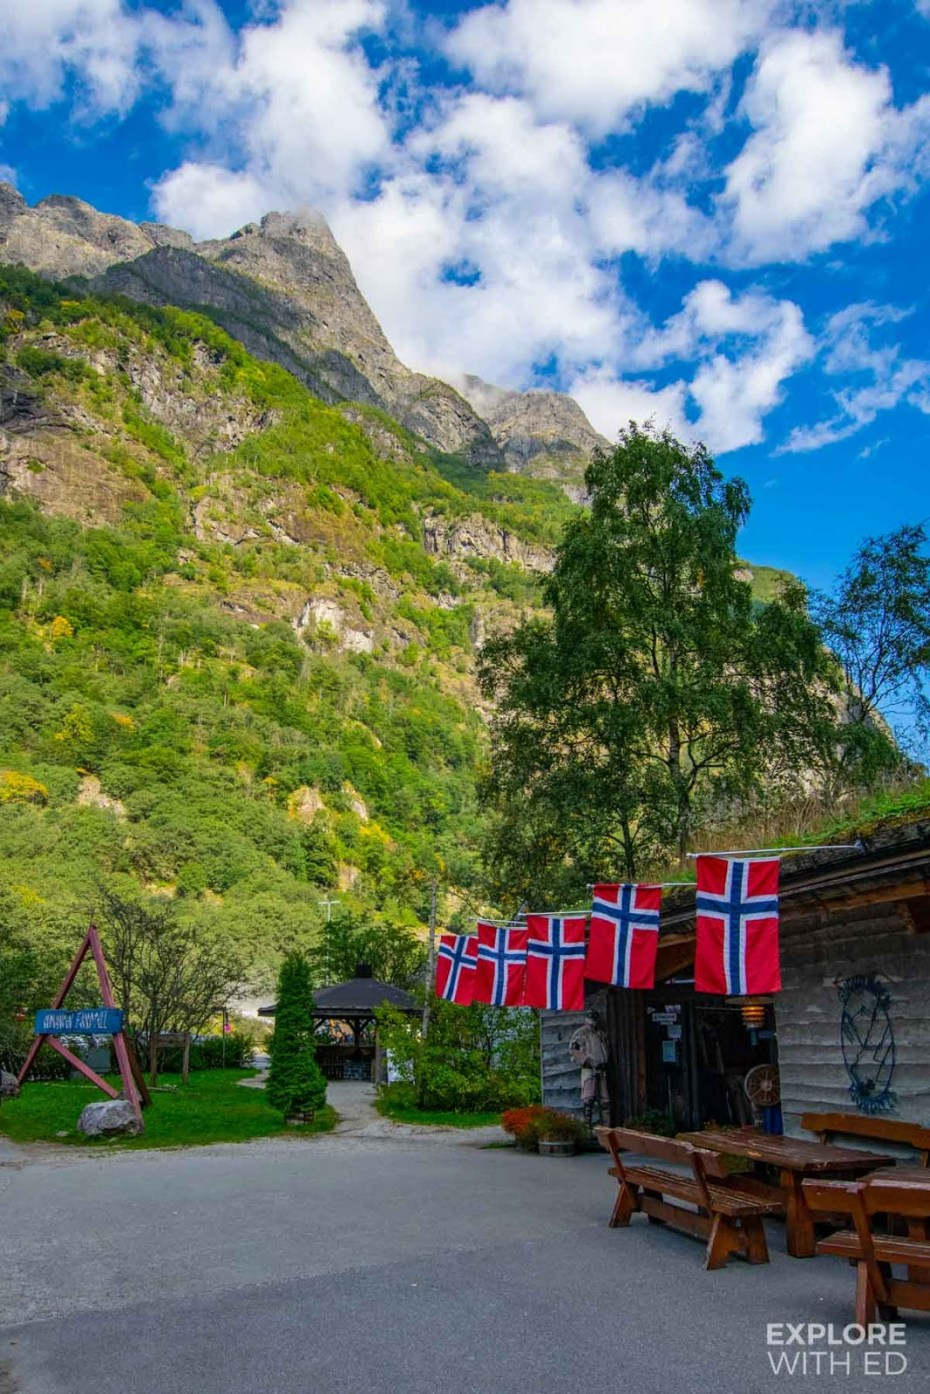 The Njardarheimr Viking Valley experience in Gudvangen